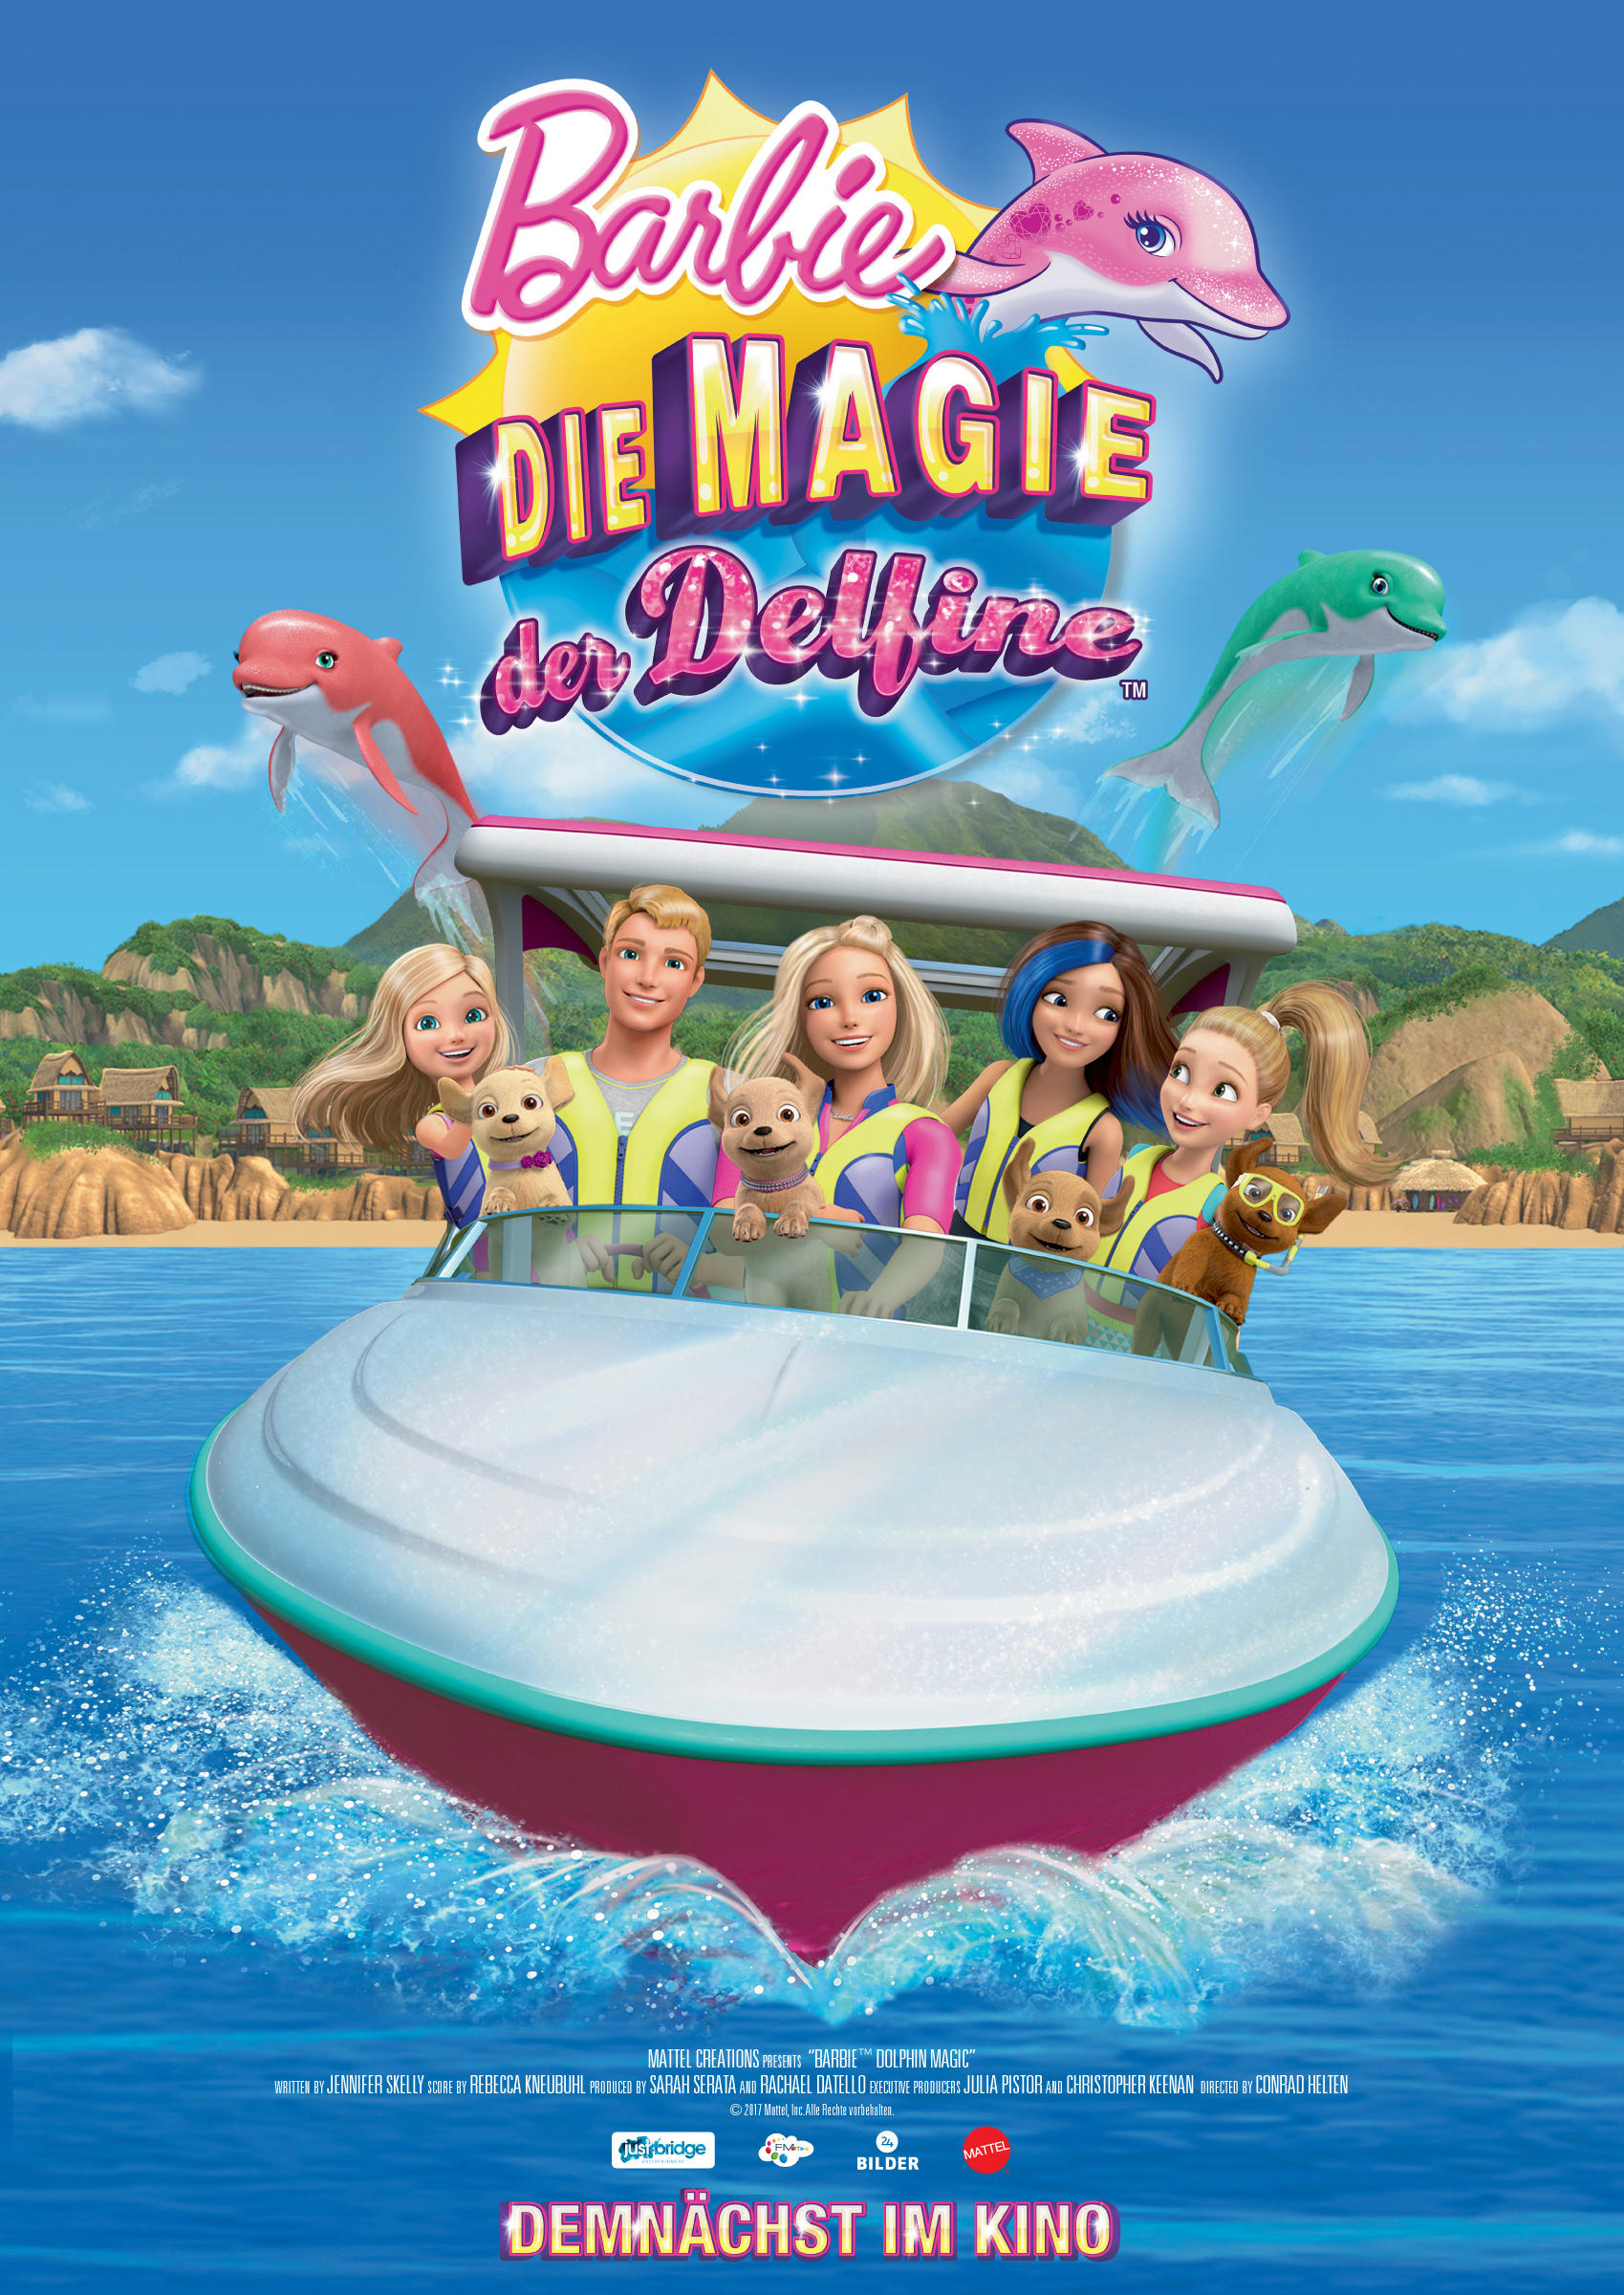 barbie delfín Magic Official Poster